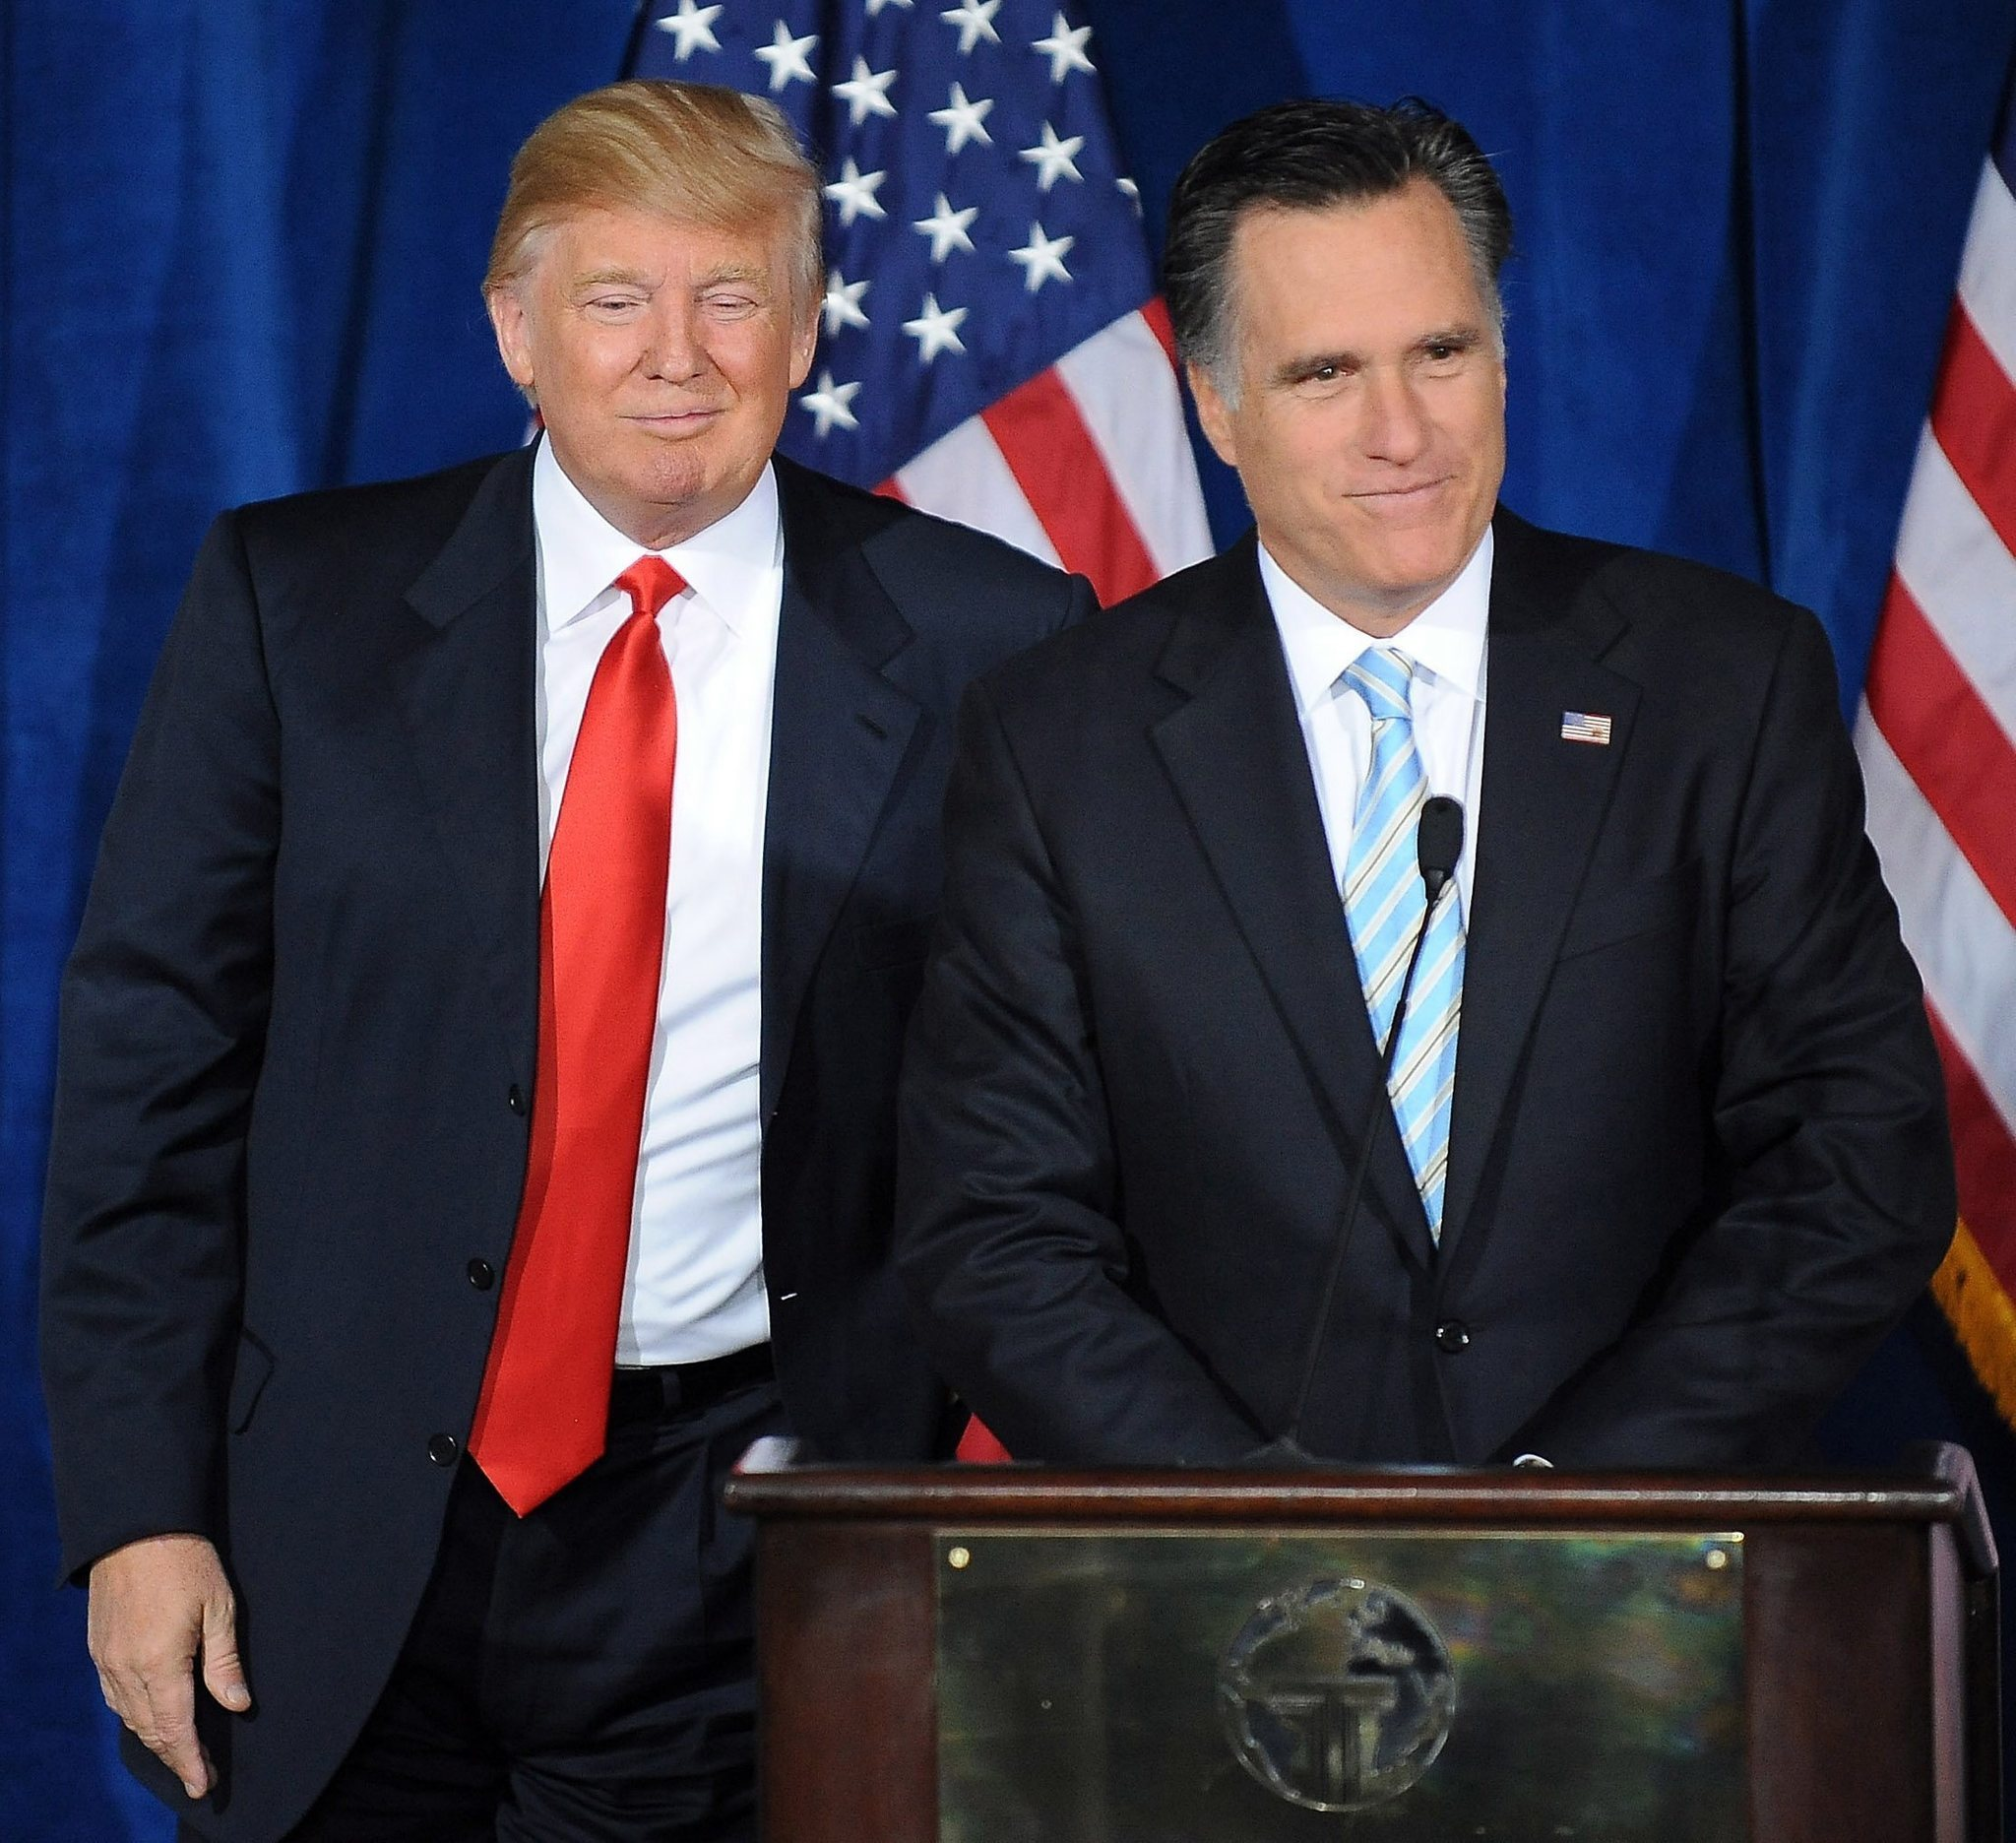 ann romney articles photos and videos los angeles times mitt 47% romney wants to save the gop from donald trump that s